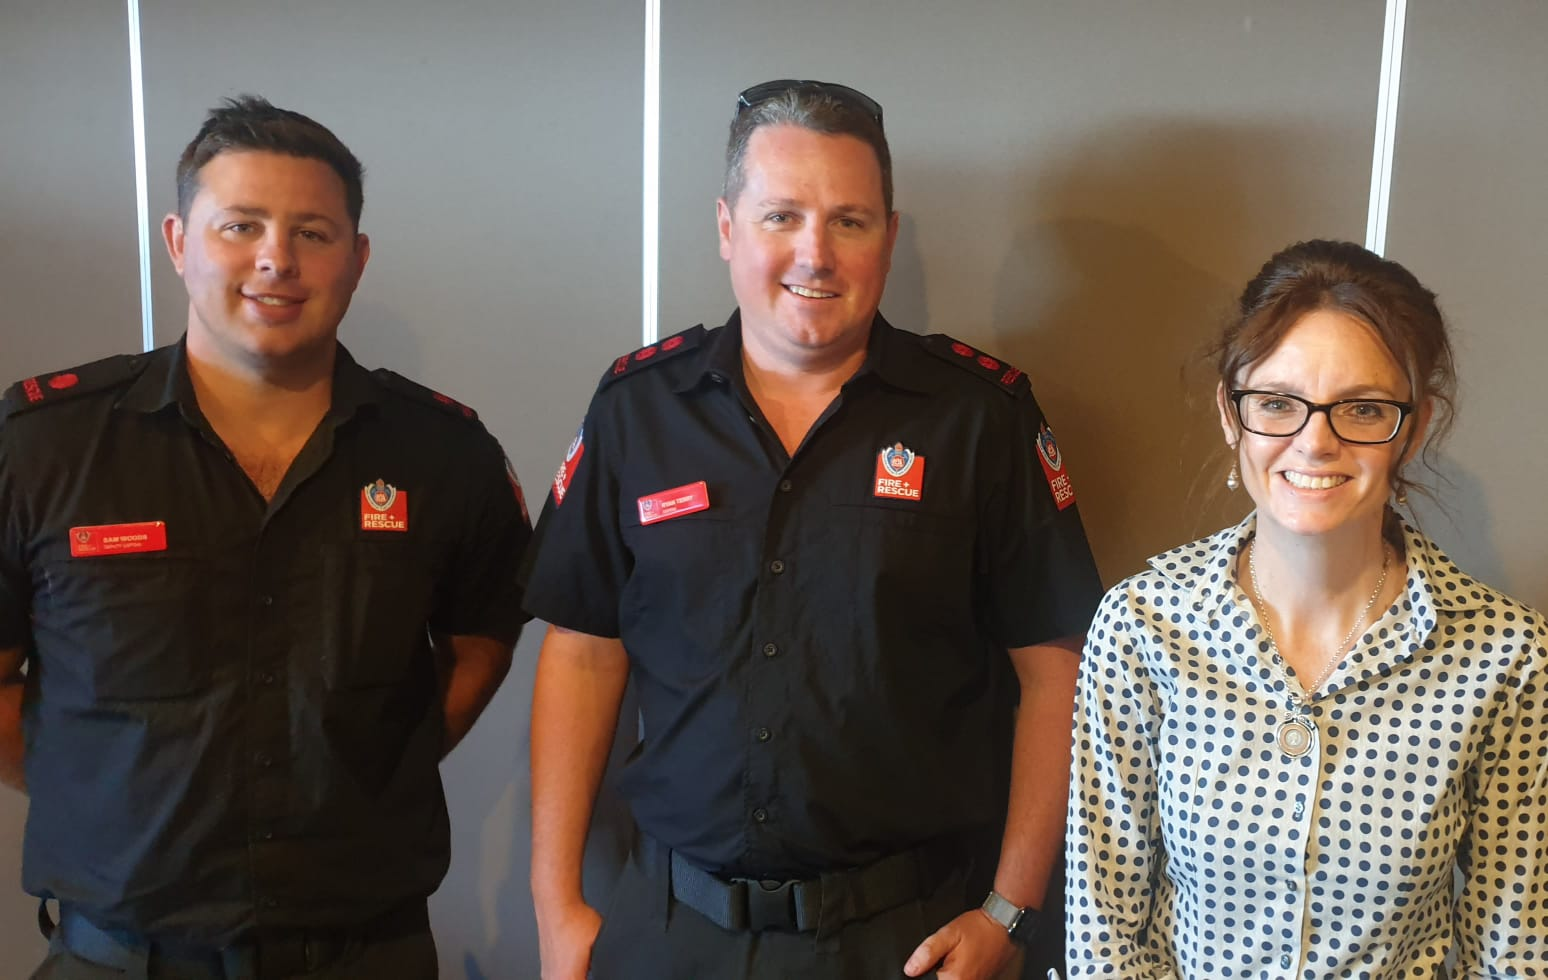 Deputy Captain Sam Woods, Captain Ryan Terry and Steph Cooke MP stand side by side and smile at the camera. Sam and Ryan wear fire and rescue uniforms.